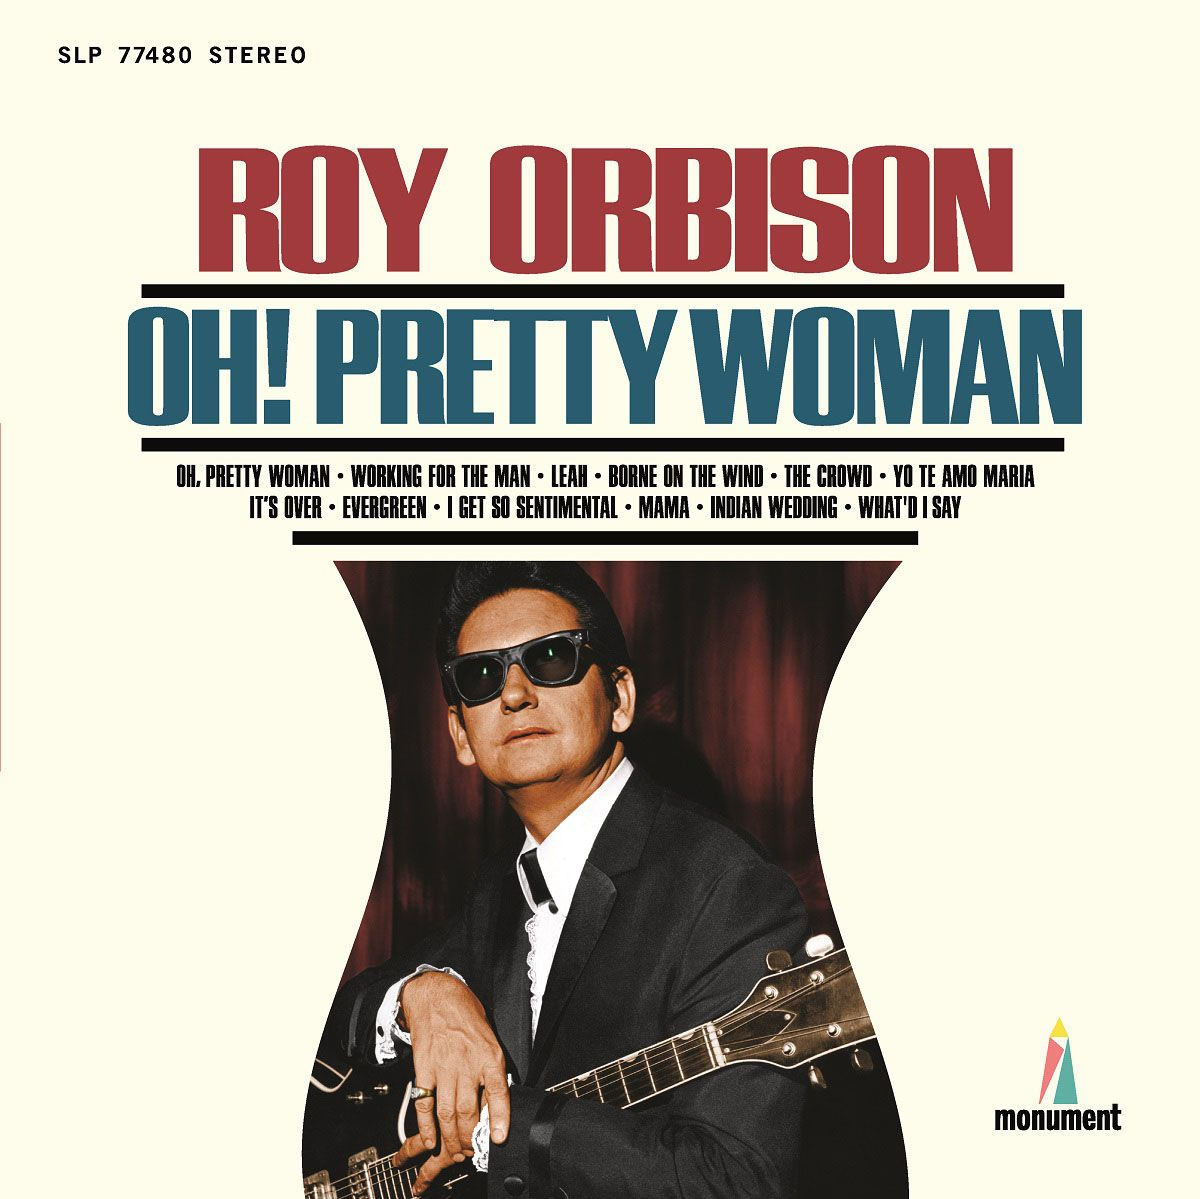 roy orbison pretty woman single 7 single on 45cat: roy orbison and the candy men - pretty woman / yo te amo maria - monument - usa - 45-851.